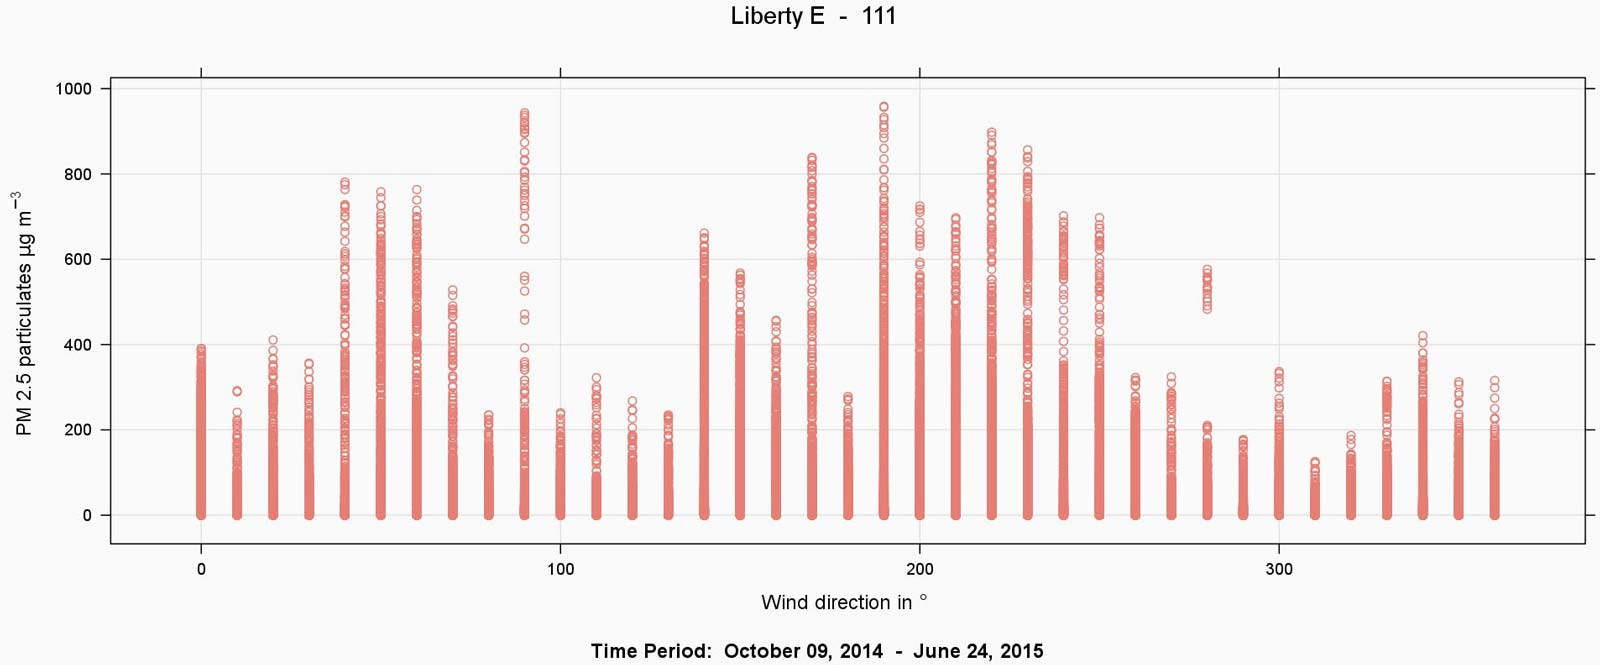 Fig5_Liberty_E_111_Windir_Scatter